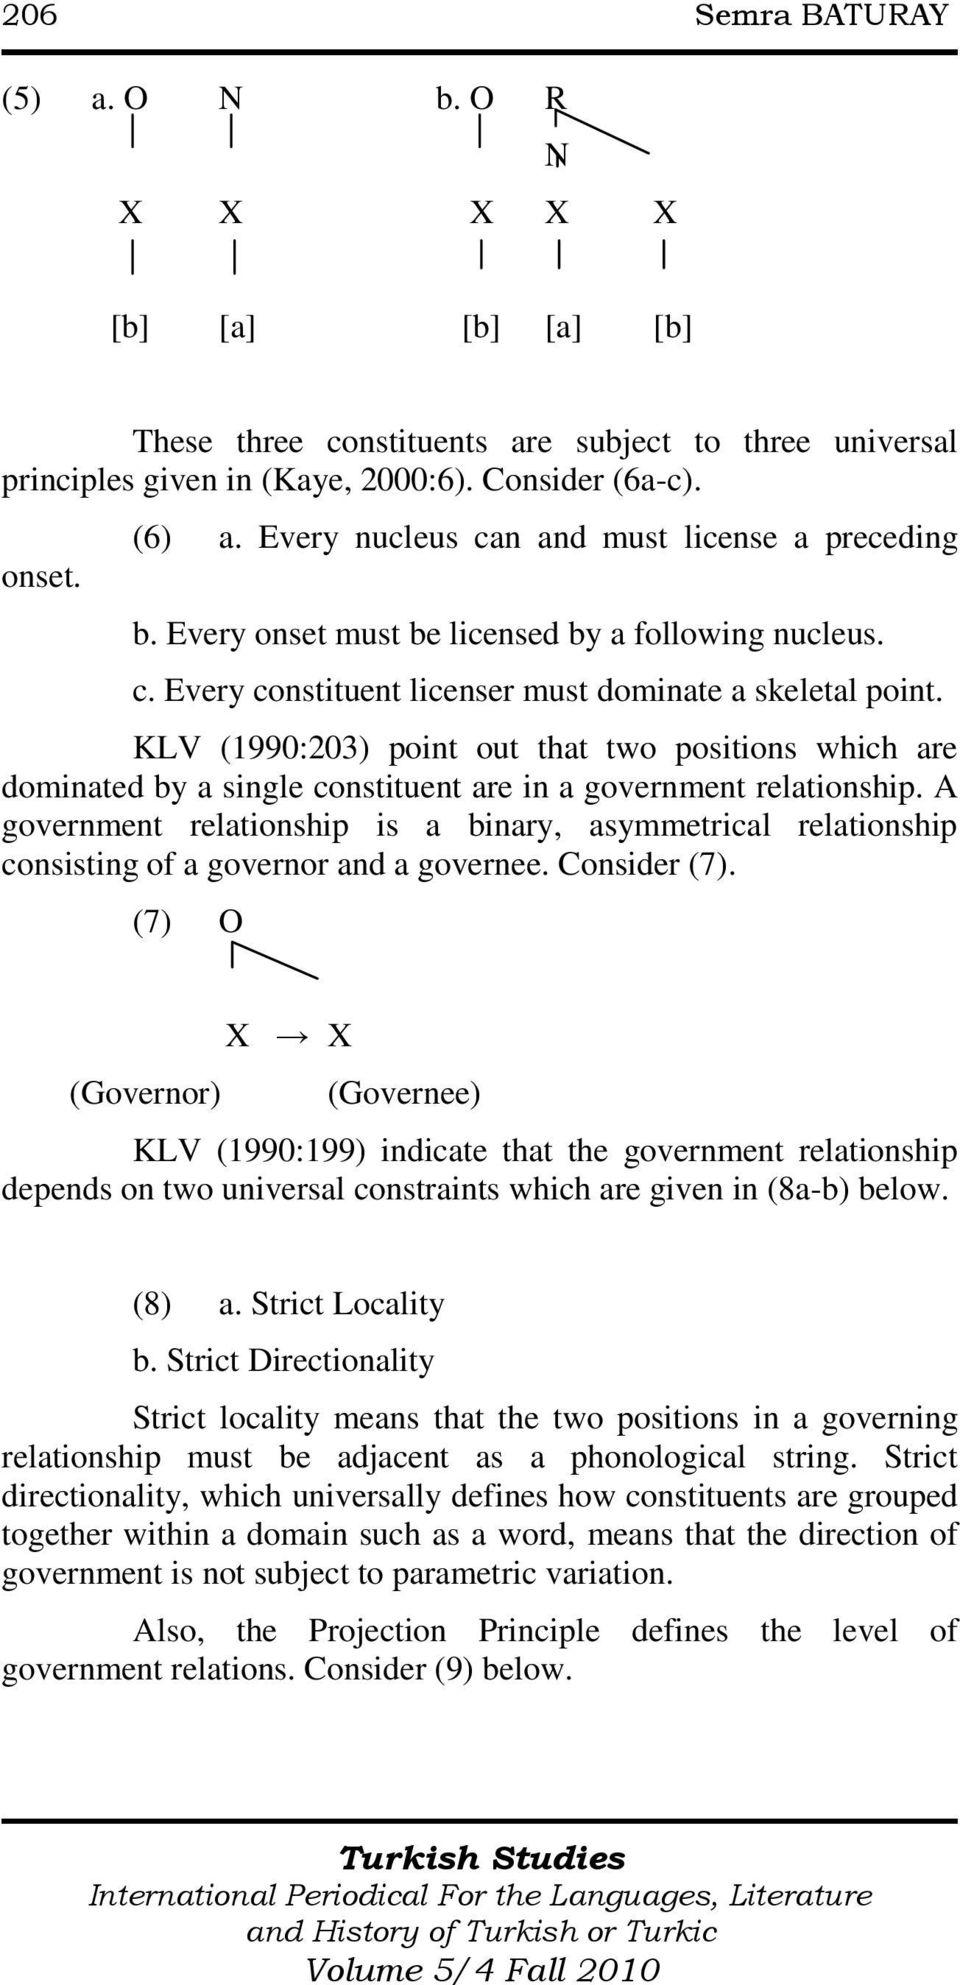 KLV (1990:203) point out that two positions which are dominated by a single constituent are in a government relationship.